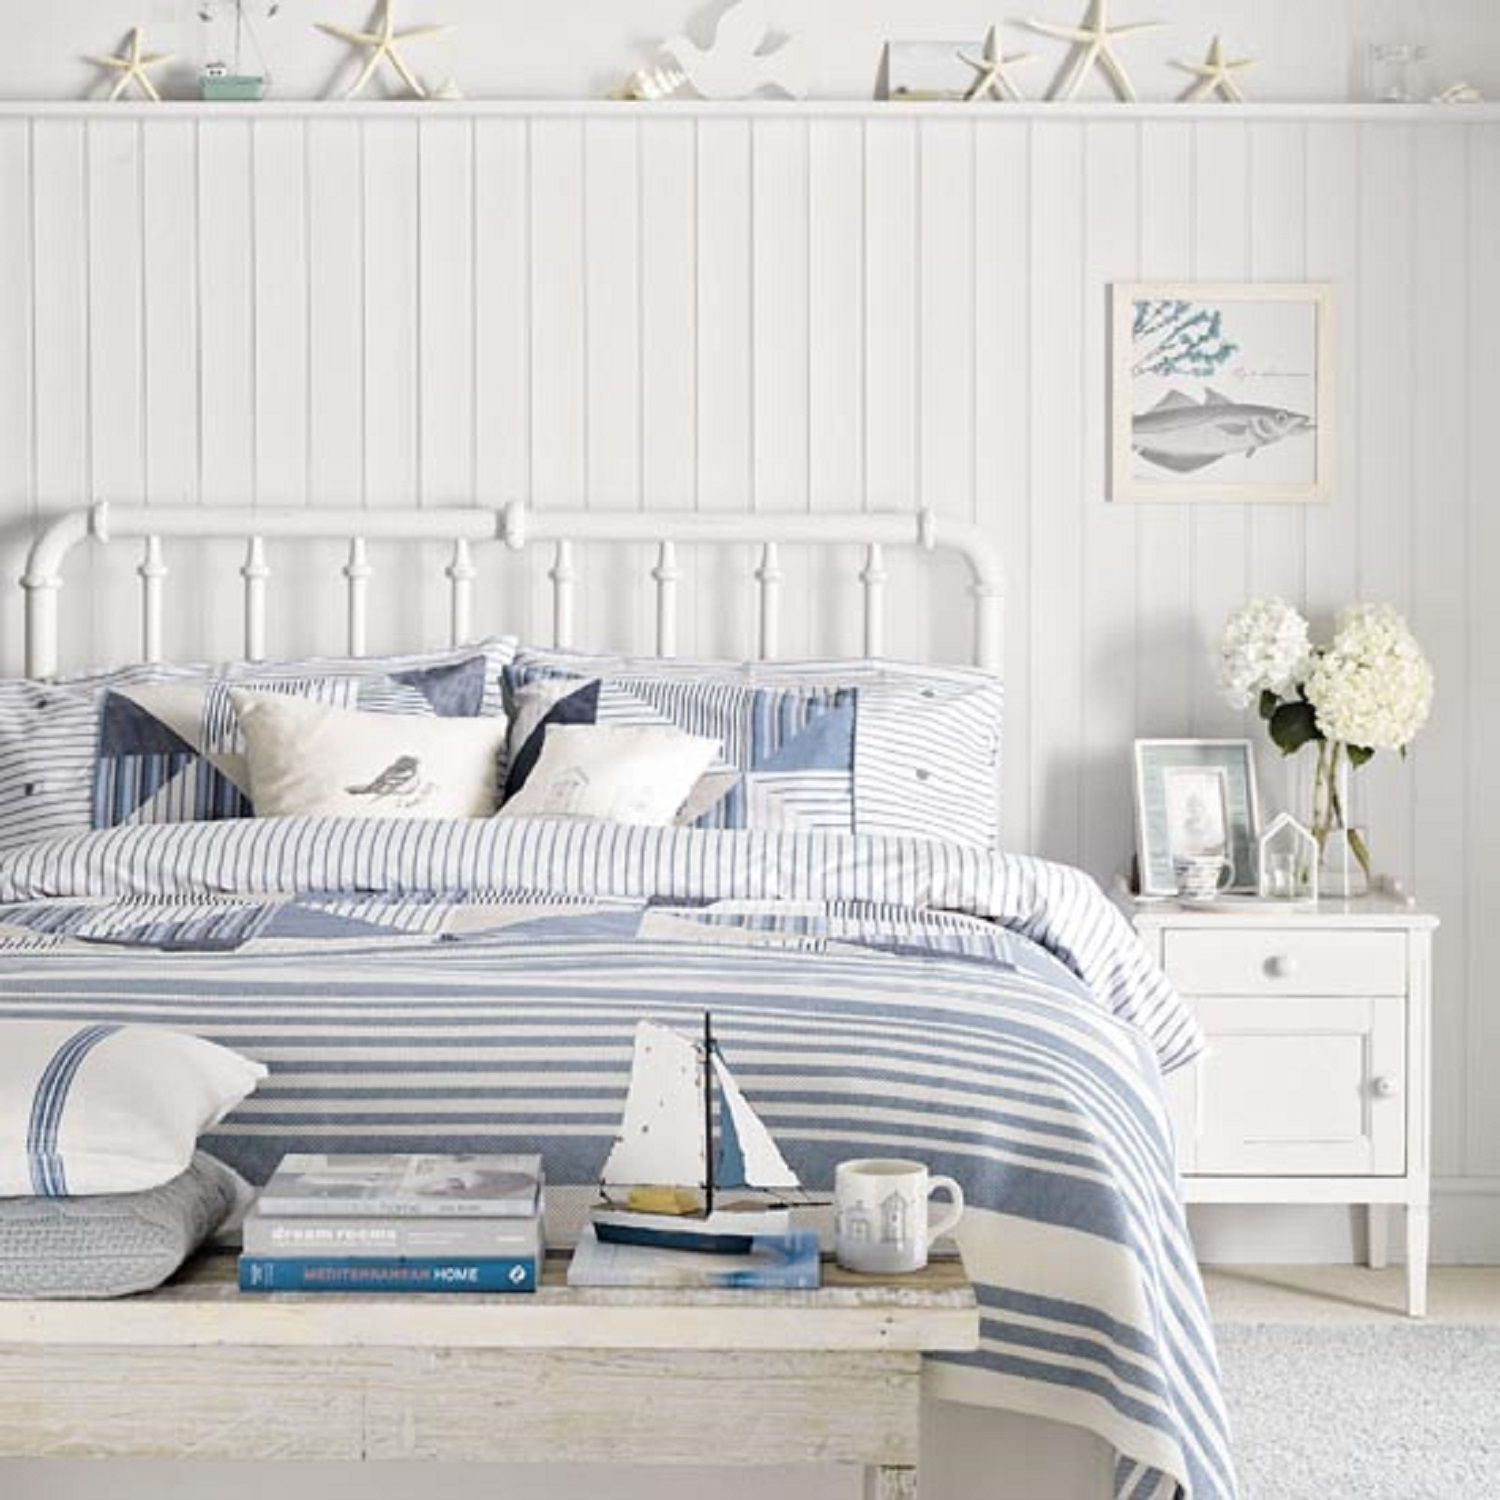 Beach Bedroom Display Shelf Home Decorating Trends Homedit Themed Themes